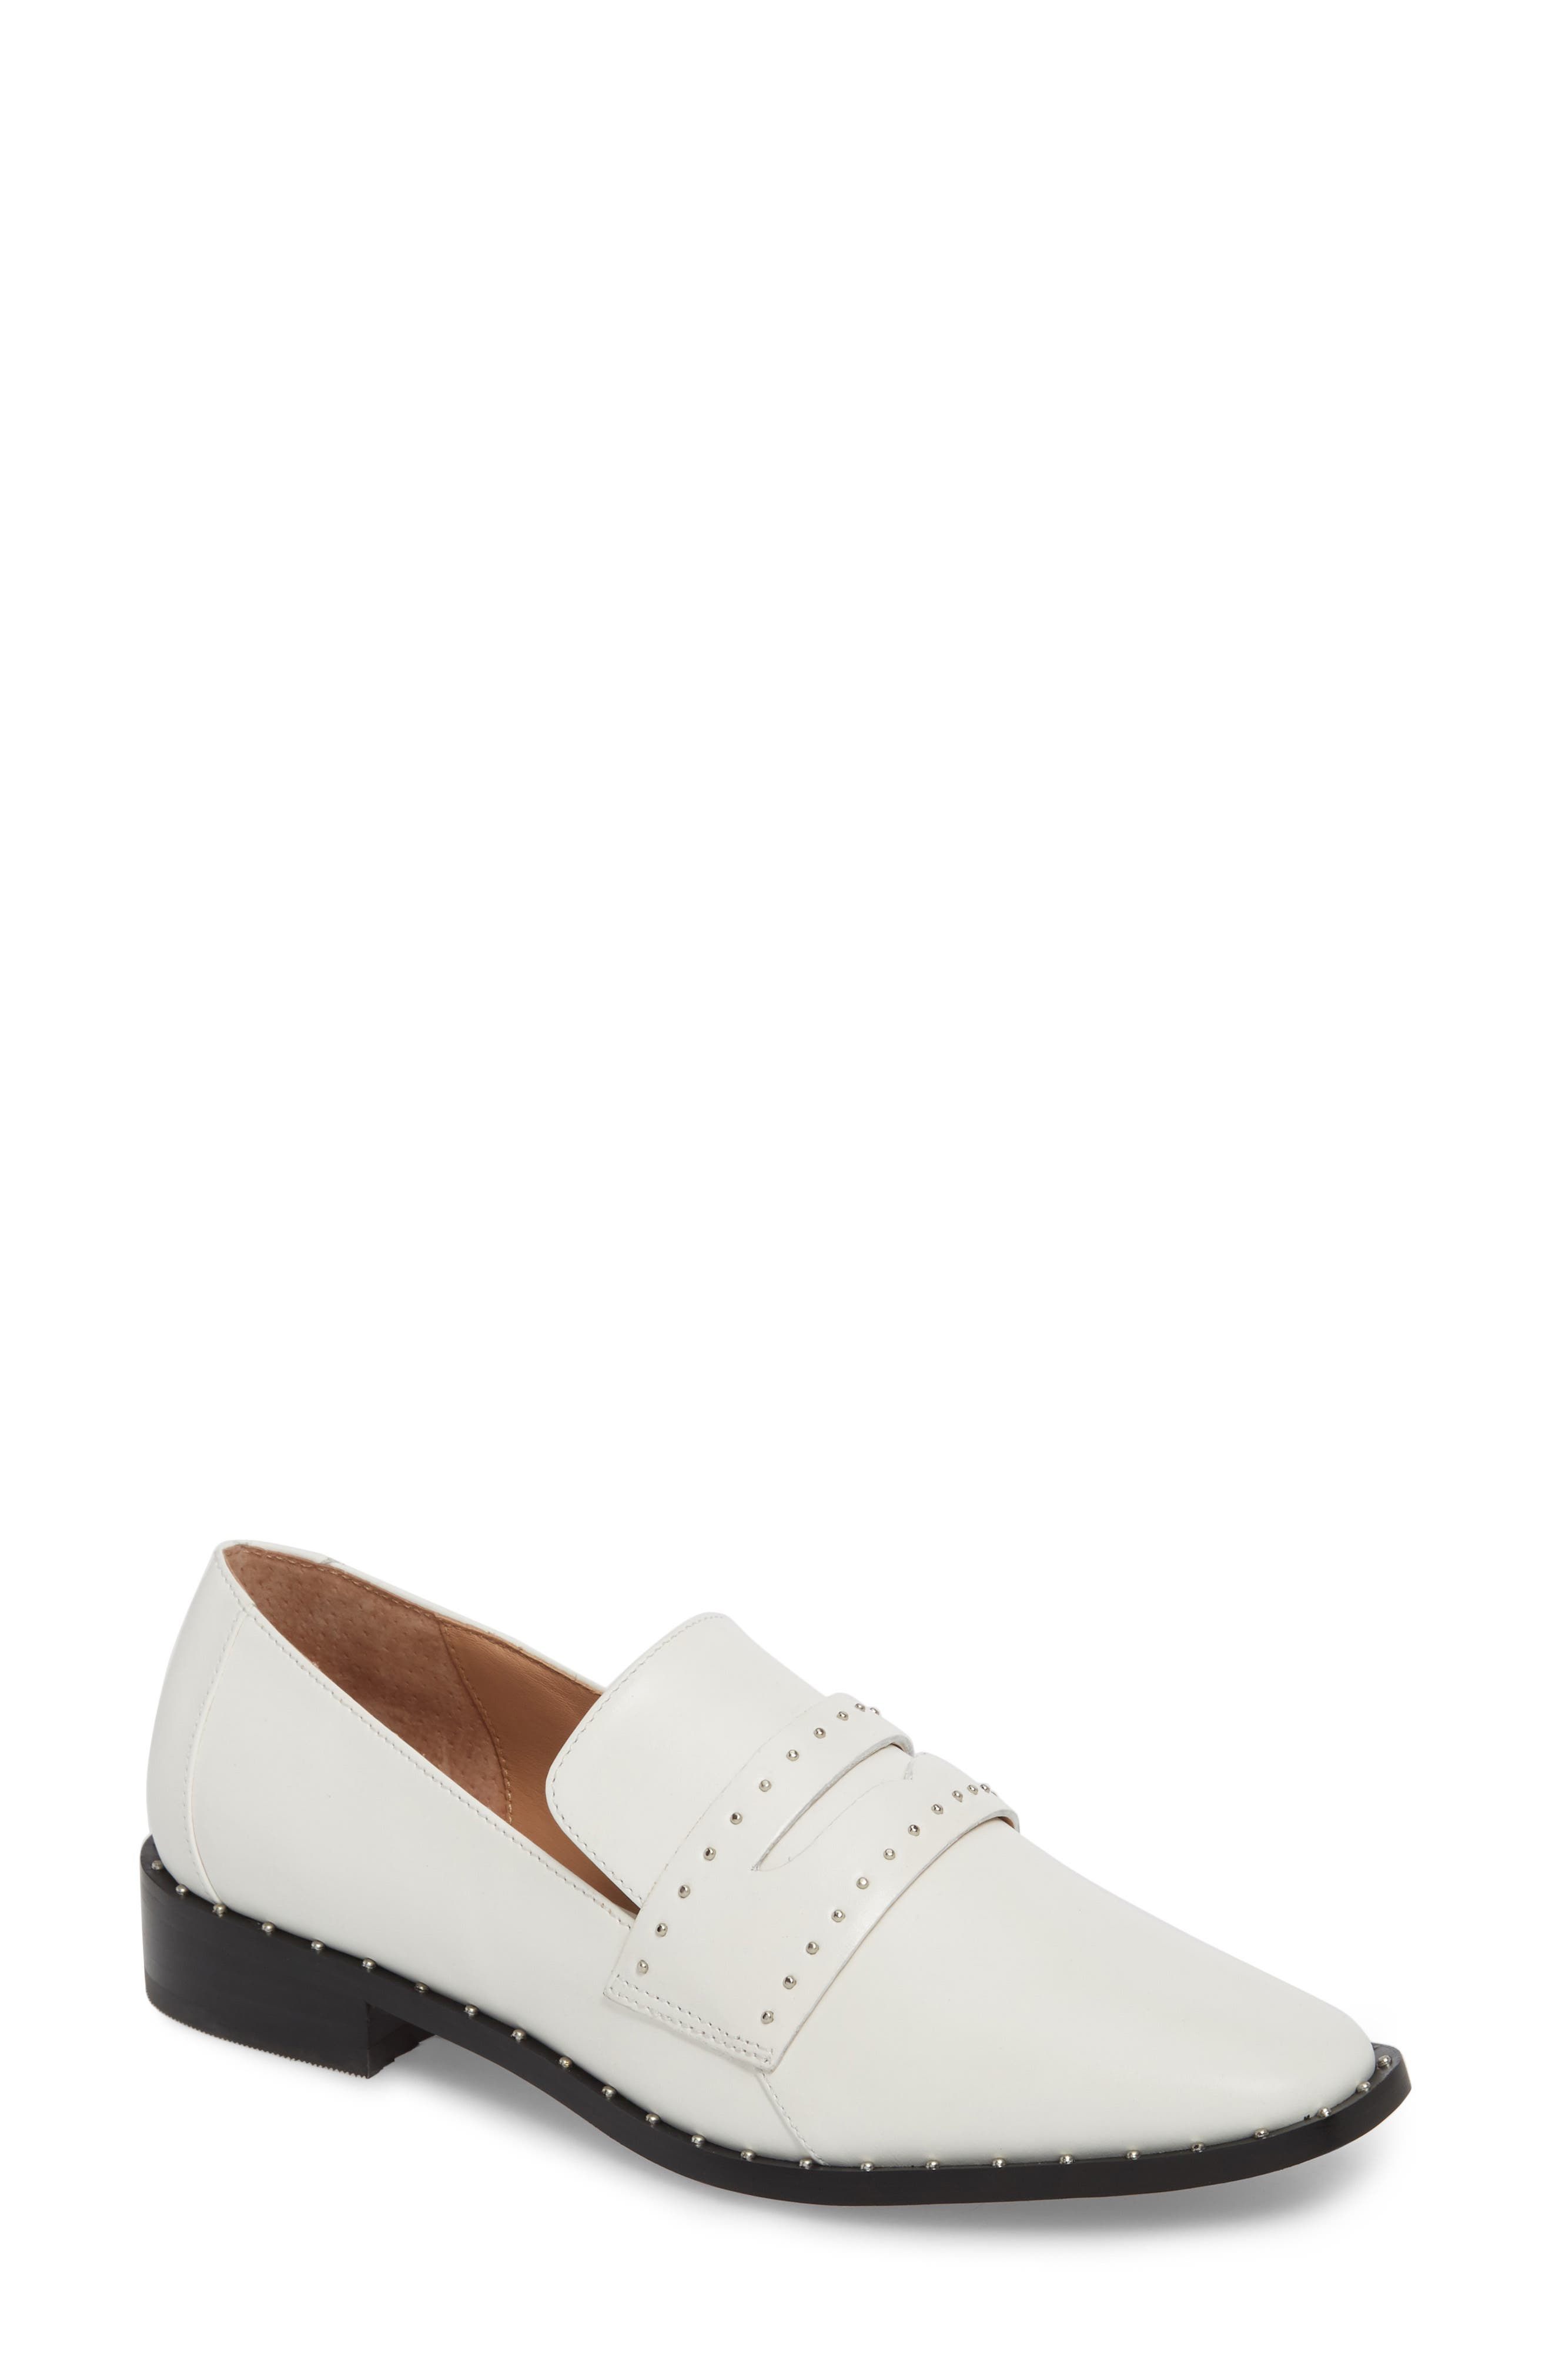 Tara Penny Loafer,                             Main thumbnail 1, color,                             Off White Leather